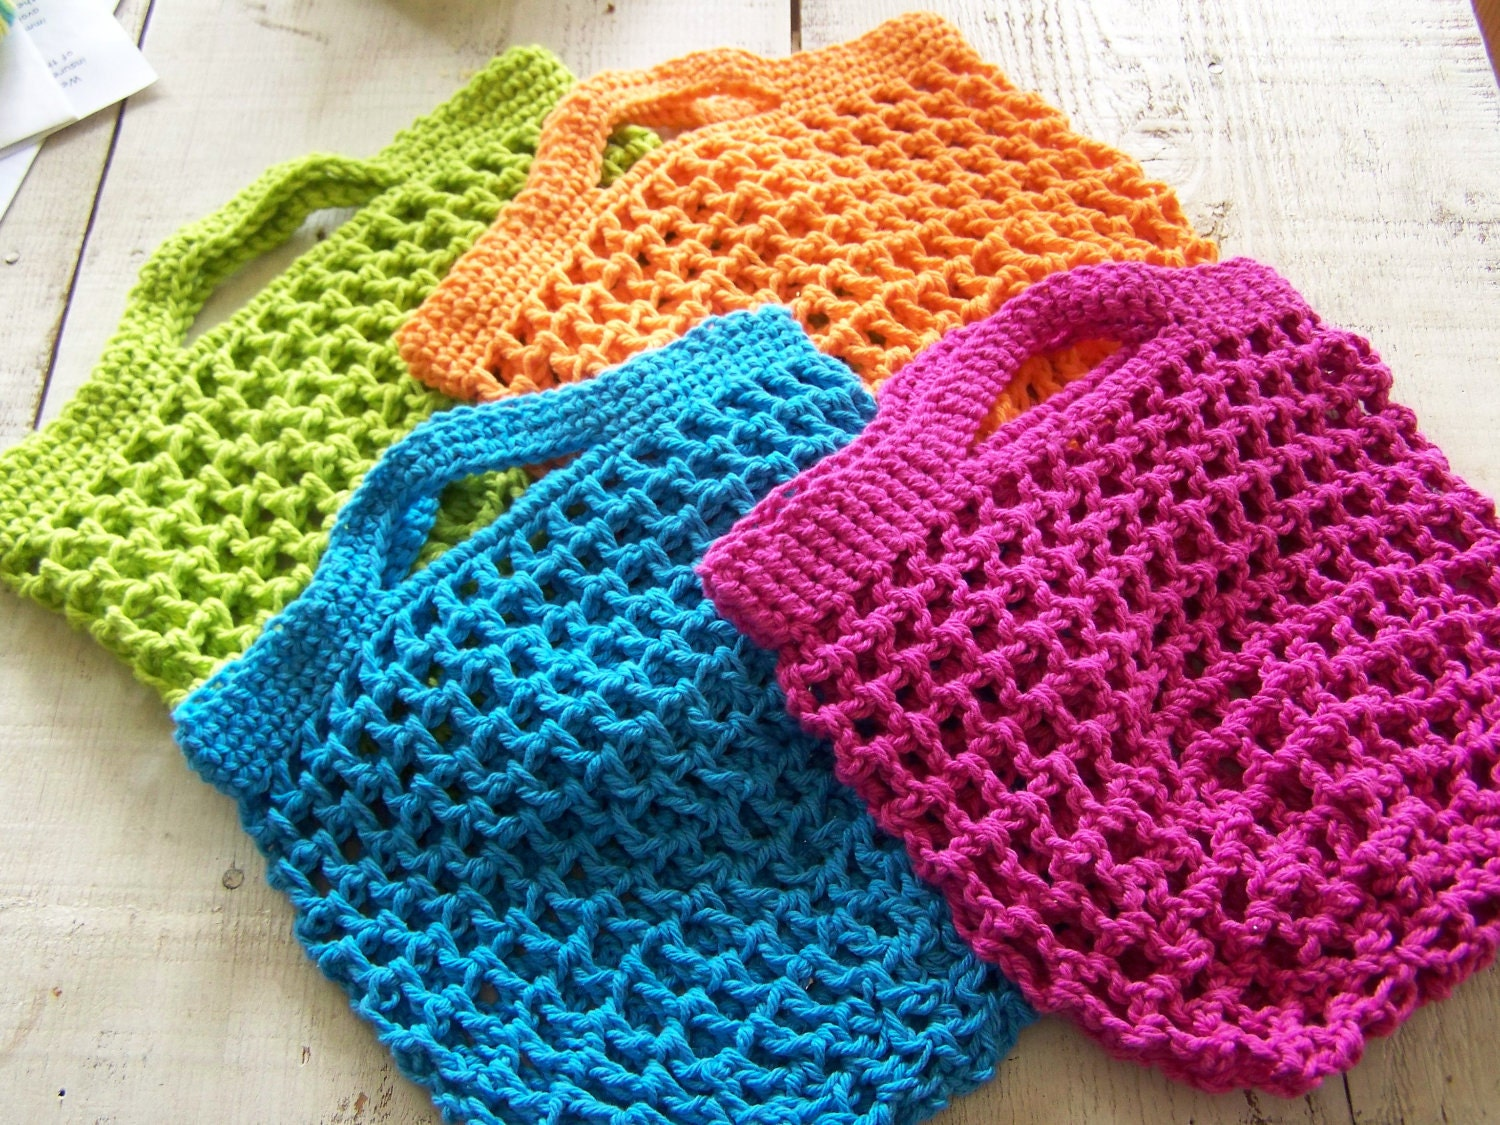 Free Crochet Patterns For Grocery Bags : Grocery Shopping Bag Pattern handmade crochet small produce